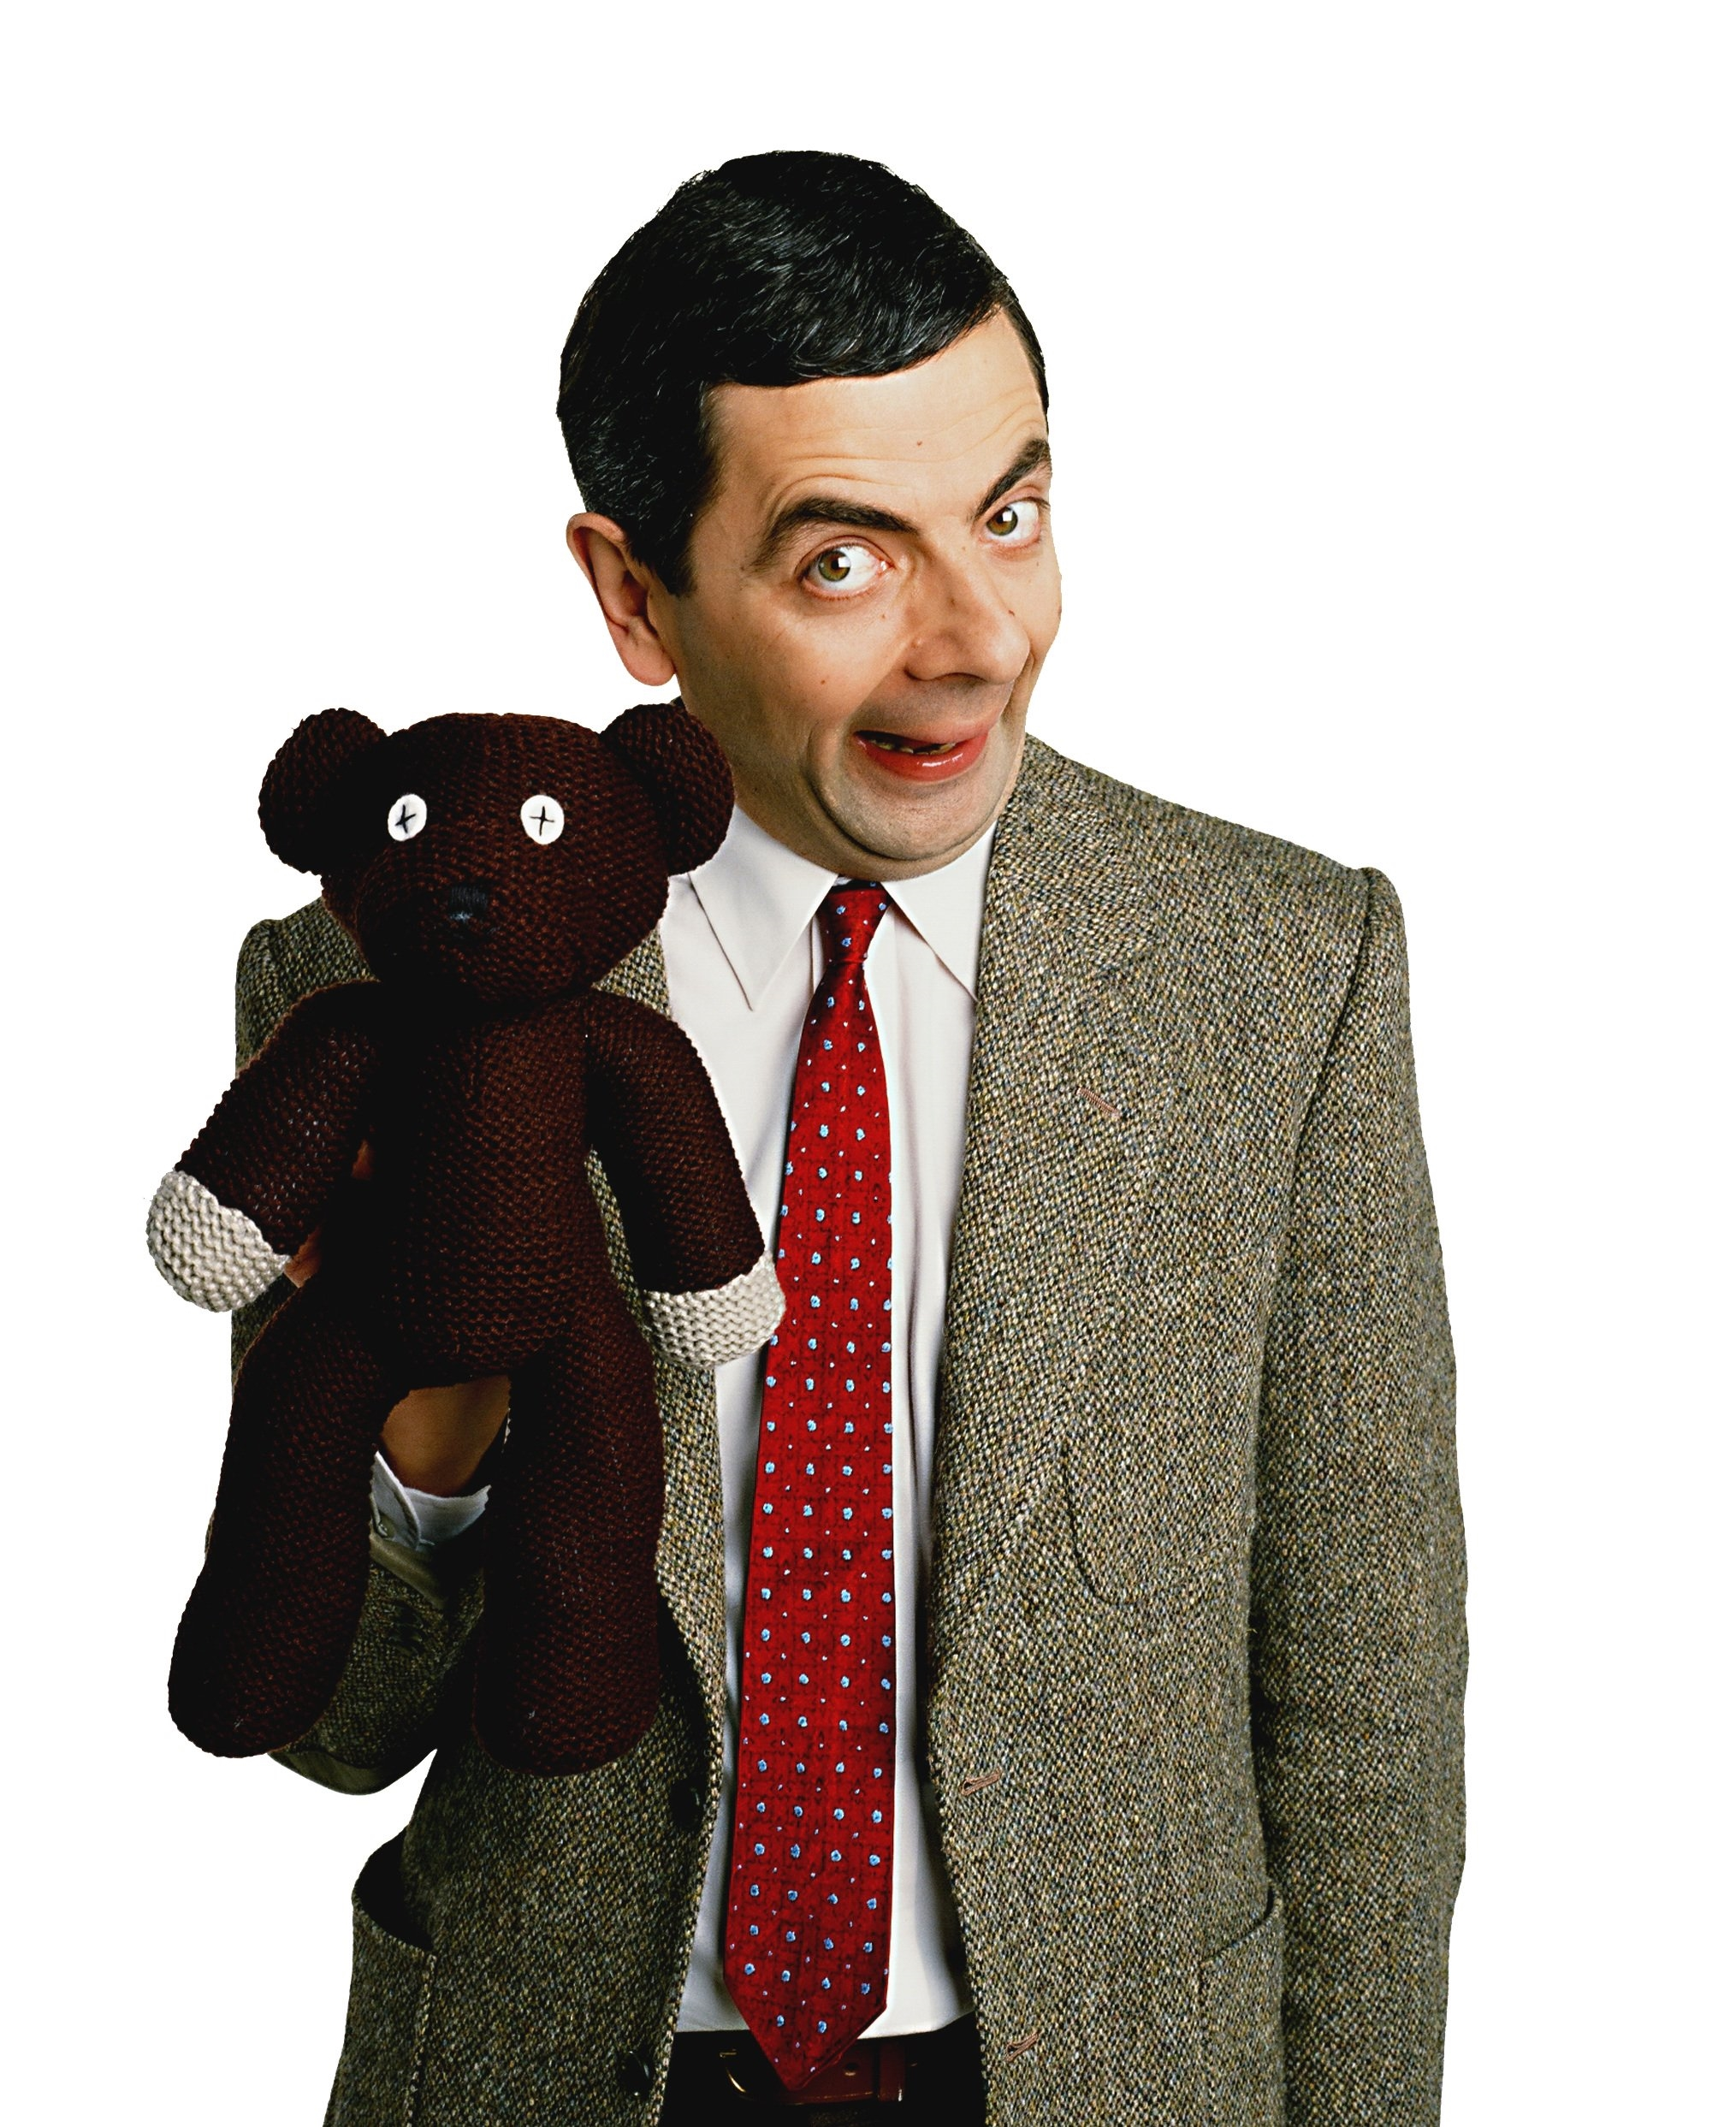 bestie mr bean